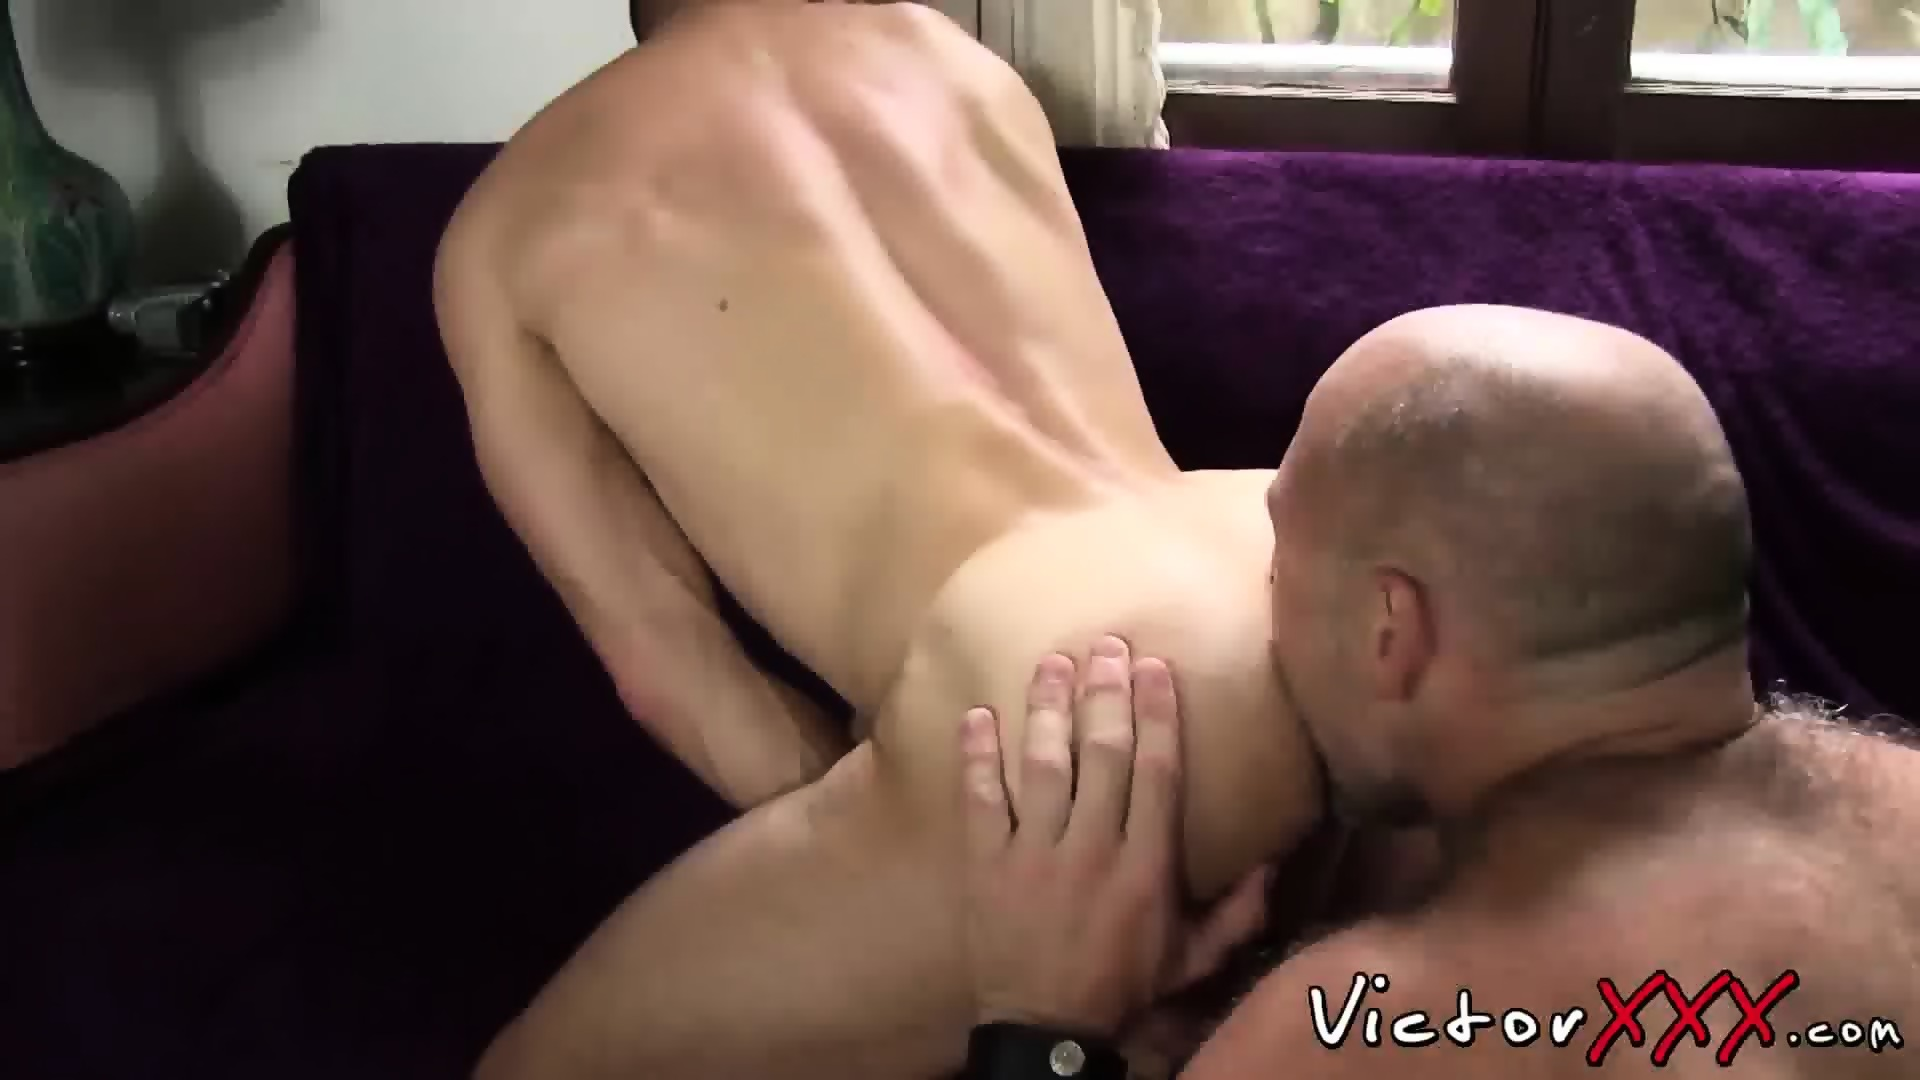 Two hairy daddies in hot hardcore sex action